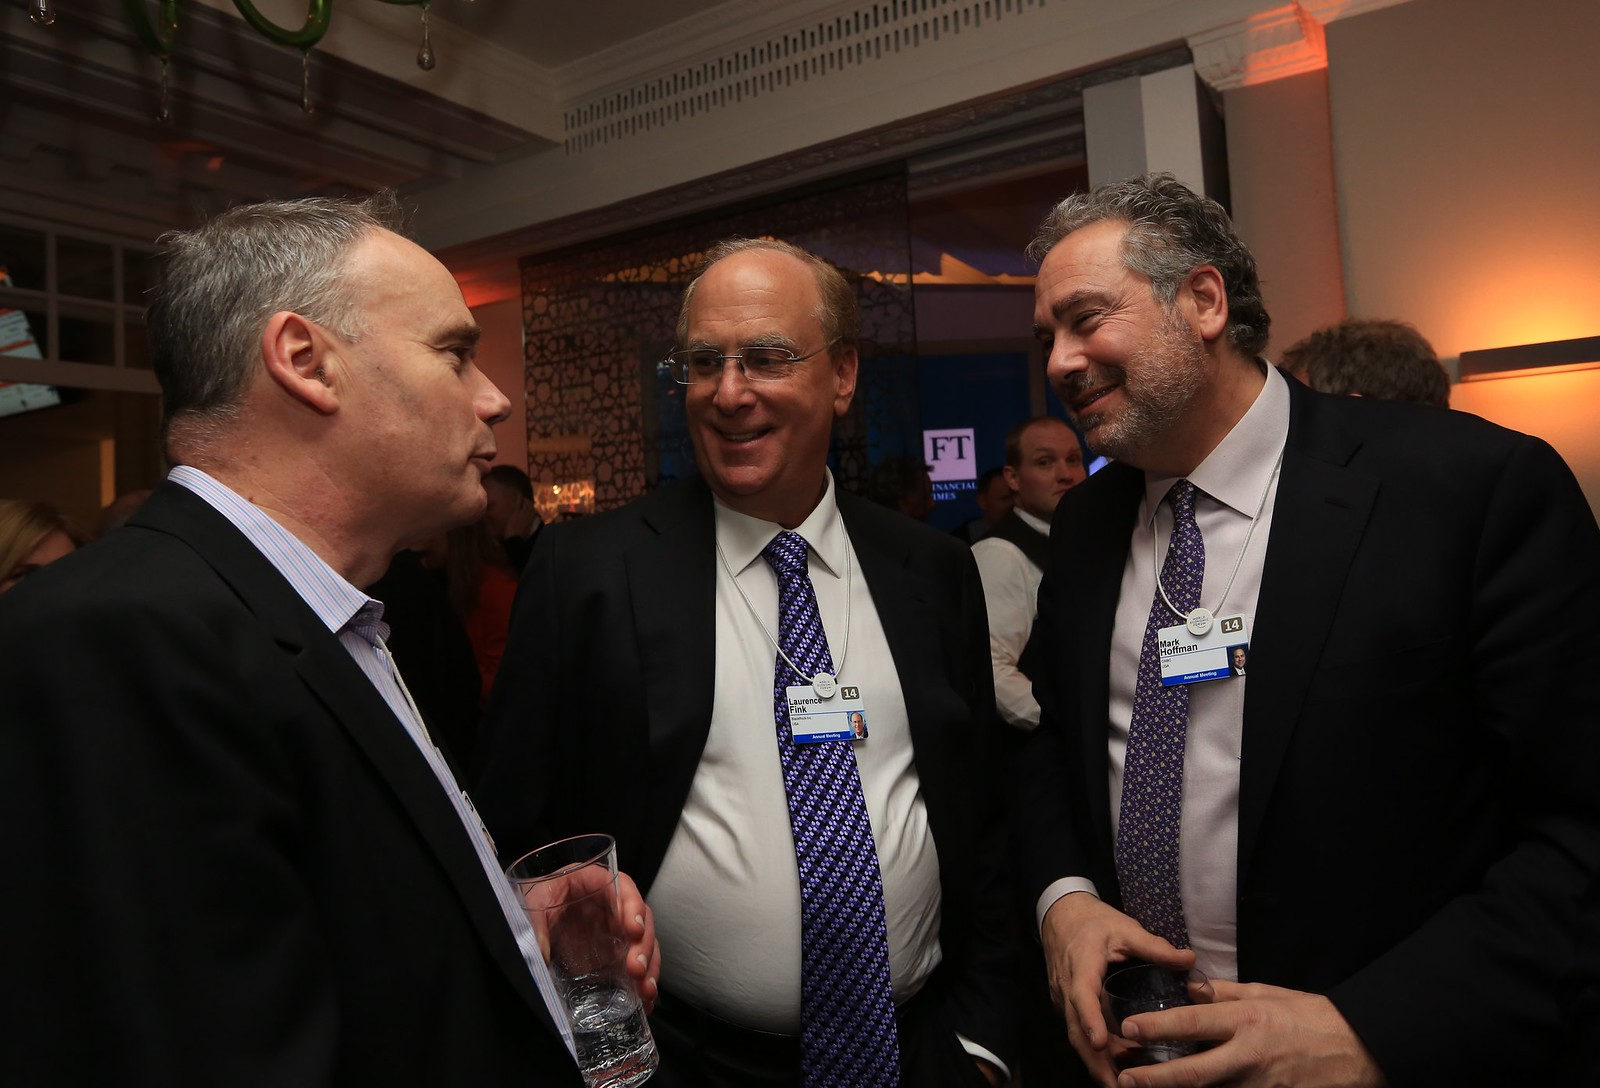 John Fallon, CEO, Pearson, Larry Fink, CEO, BlackRock and Mark Hoffman, President, CNBC